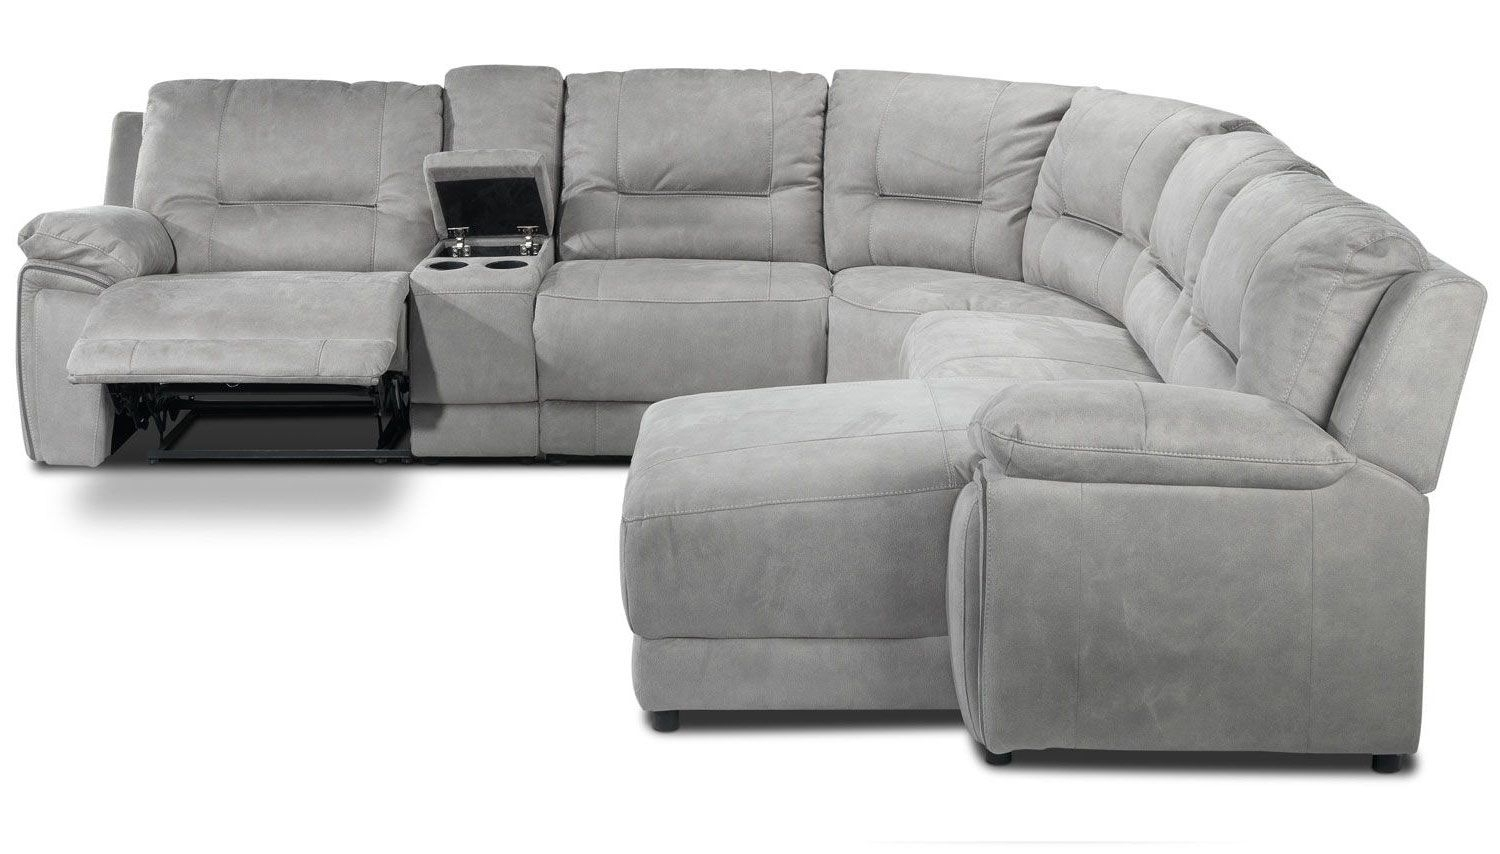 Pasadena 6 Pc. Reclining Sectional With Chaise | Leon's | Design with Jackson 6 Piece Power Reclining Sectionals With  Sleeper (Image 18 of 30)